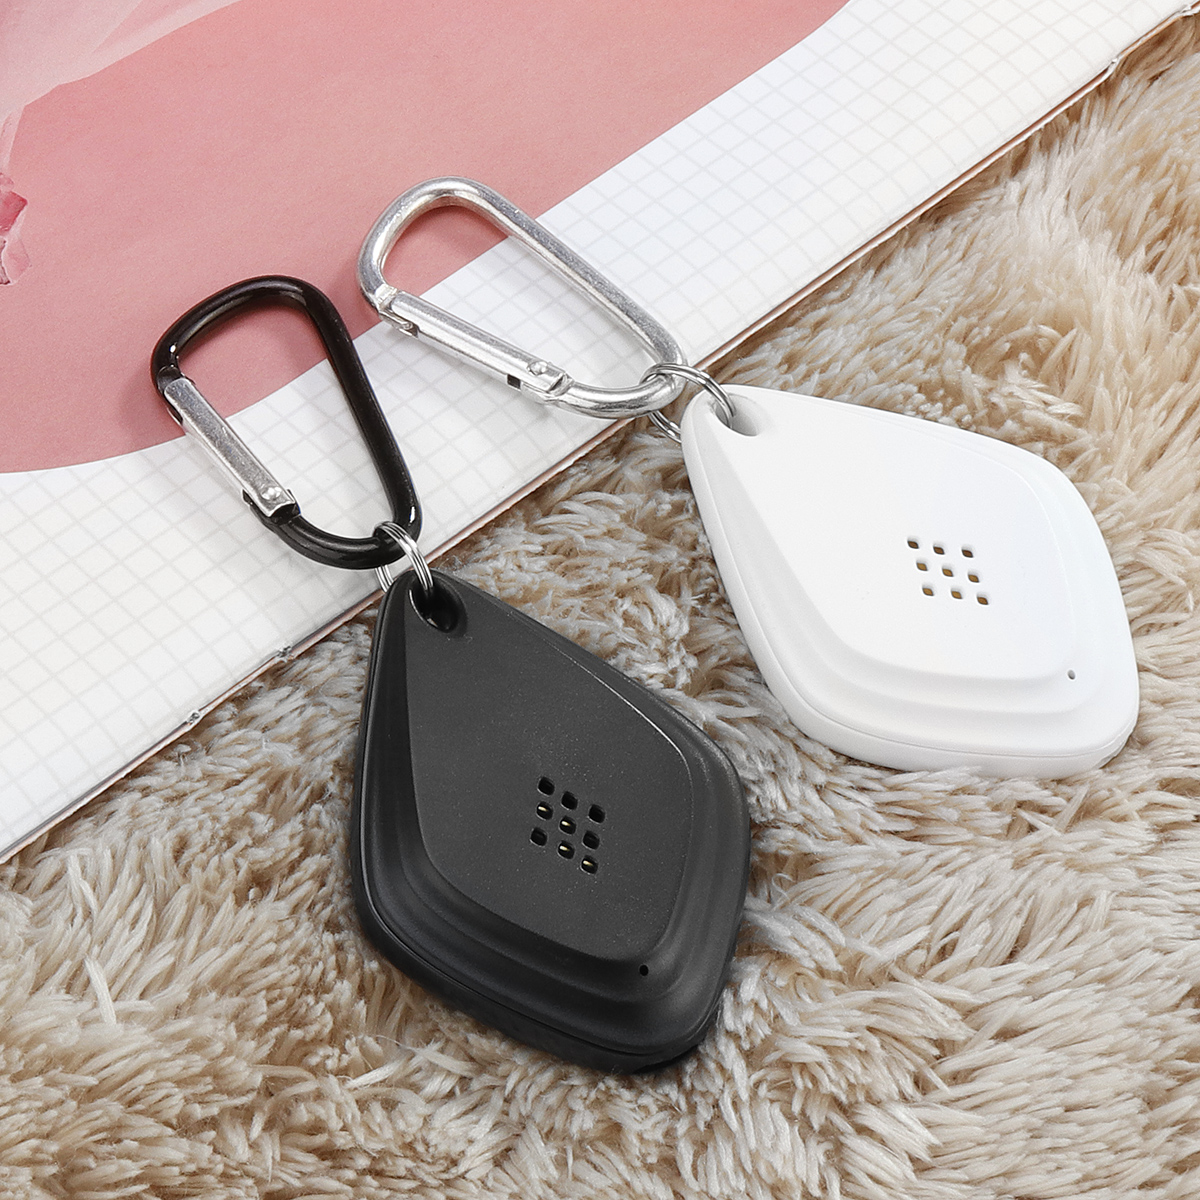 USB Portable Smart Ultrasonic Pest Repellent Frequency Conversion Ultrasonic Anti Mosquito Insect Animal Repeller